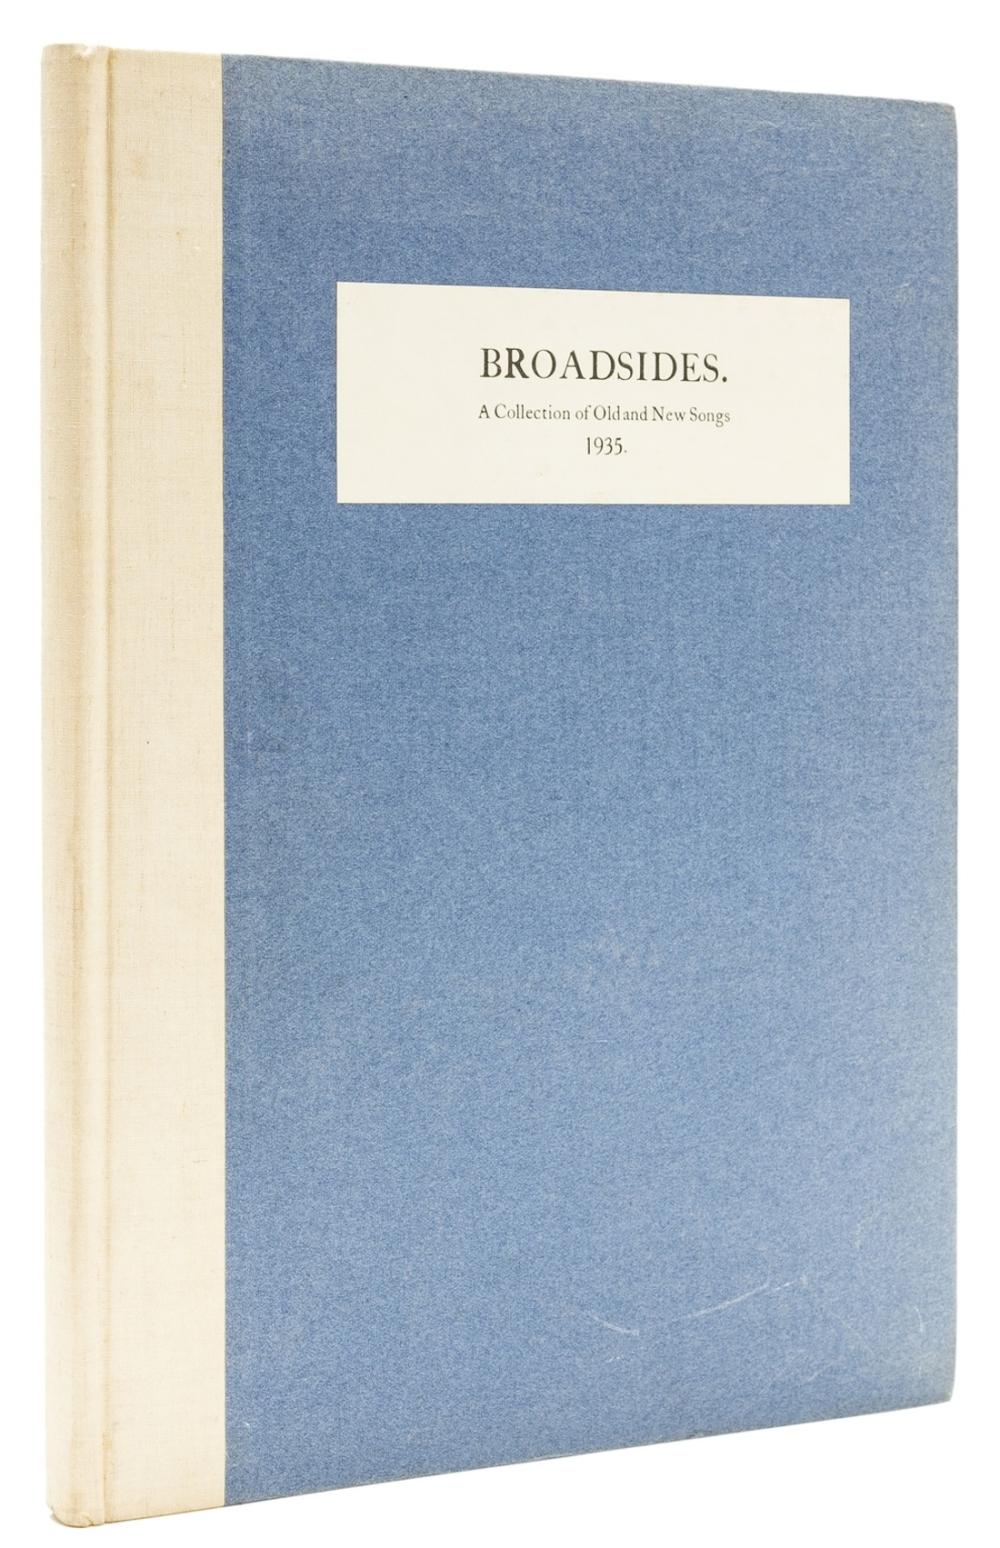 Cuala Press.- Yeats (William Butler) Broadsides. a Collection of Old and New Songs, 1935, one of 100 copies signed by Yeats and Higgins, Dublin, Cuala Press, 1935.